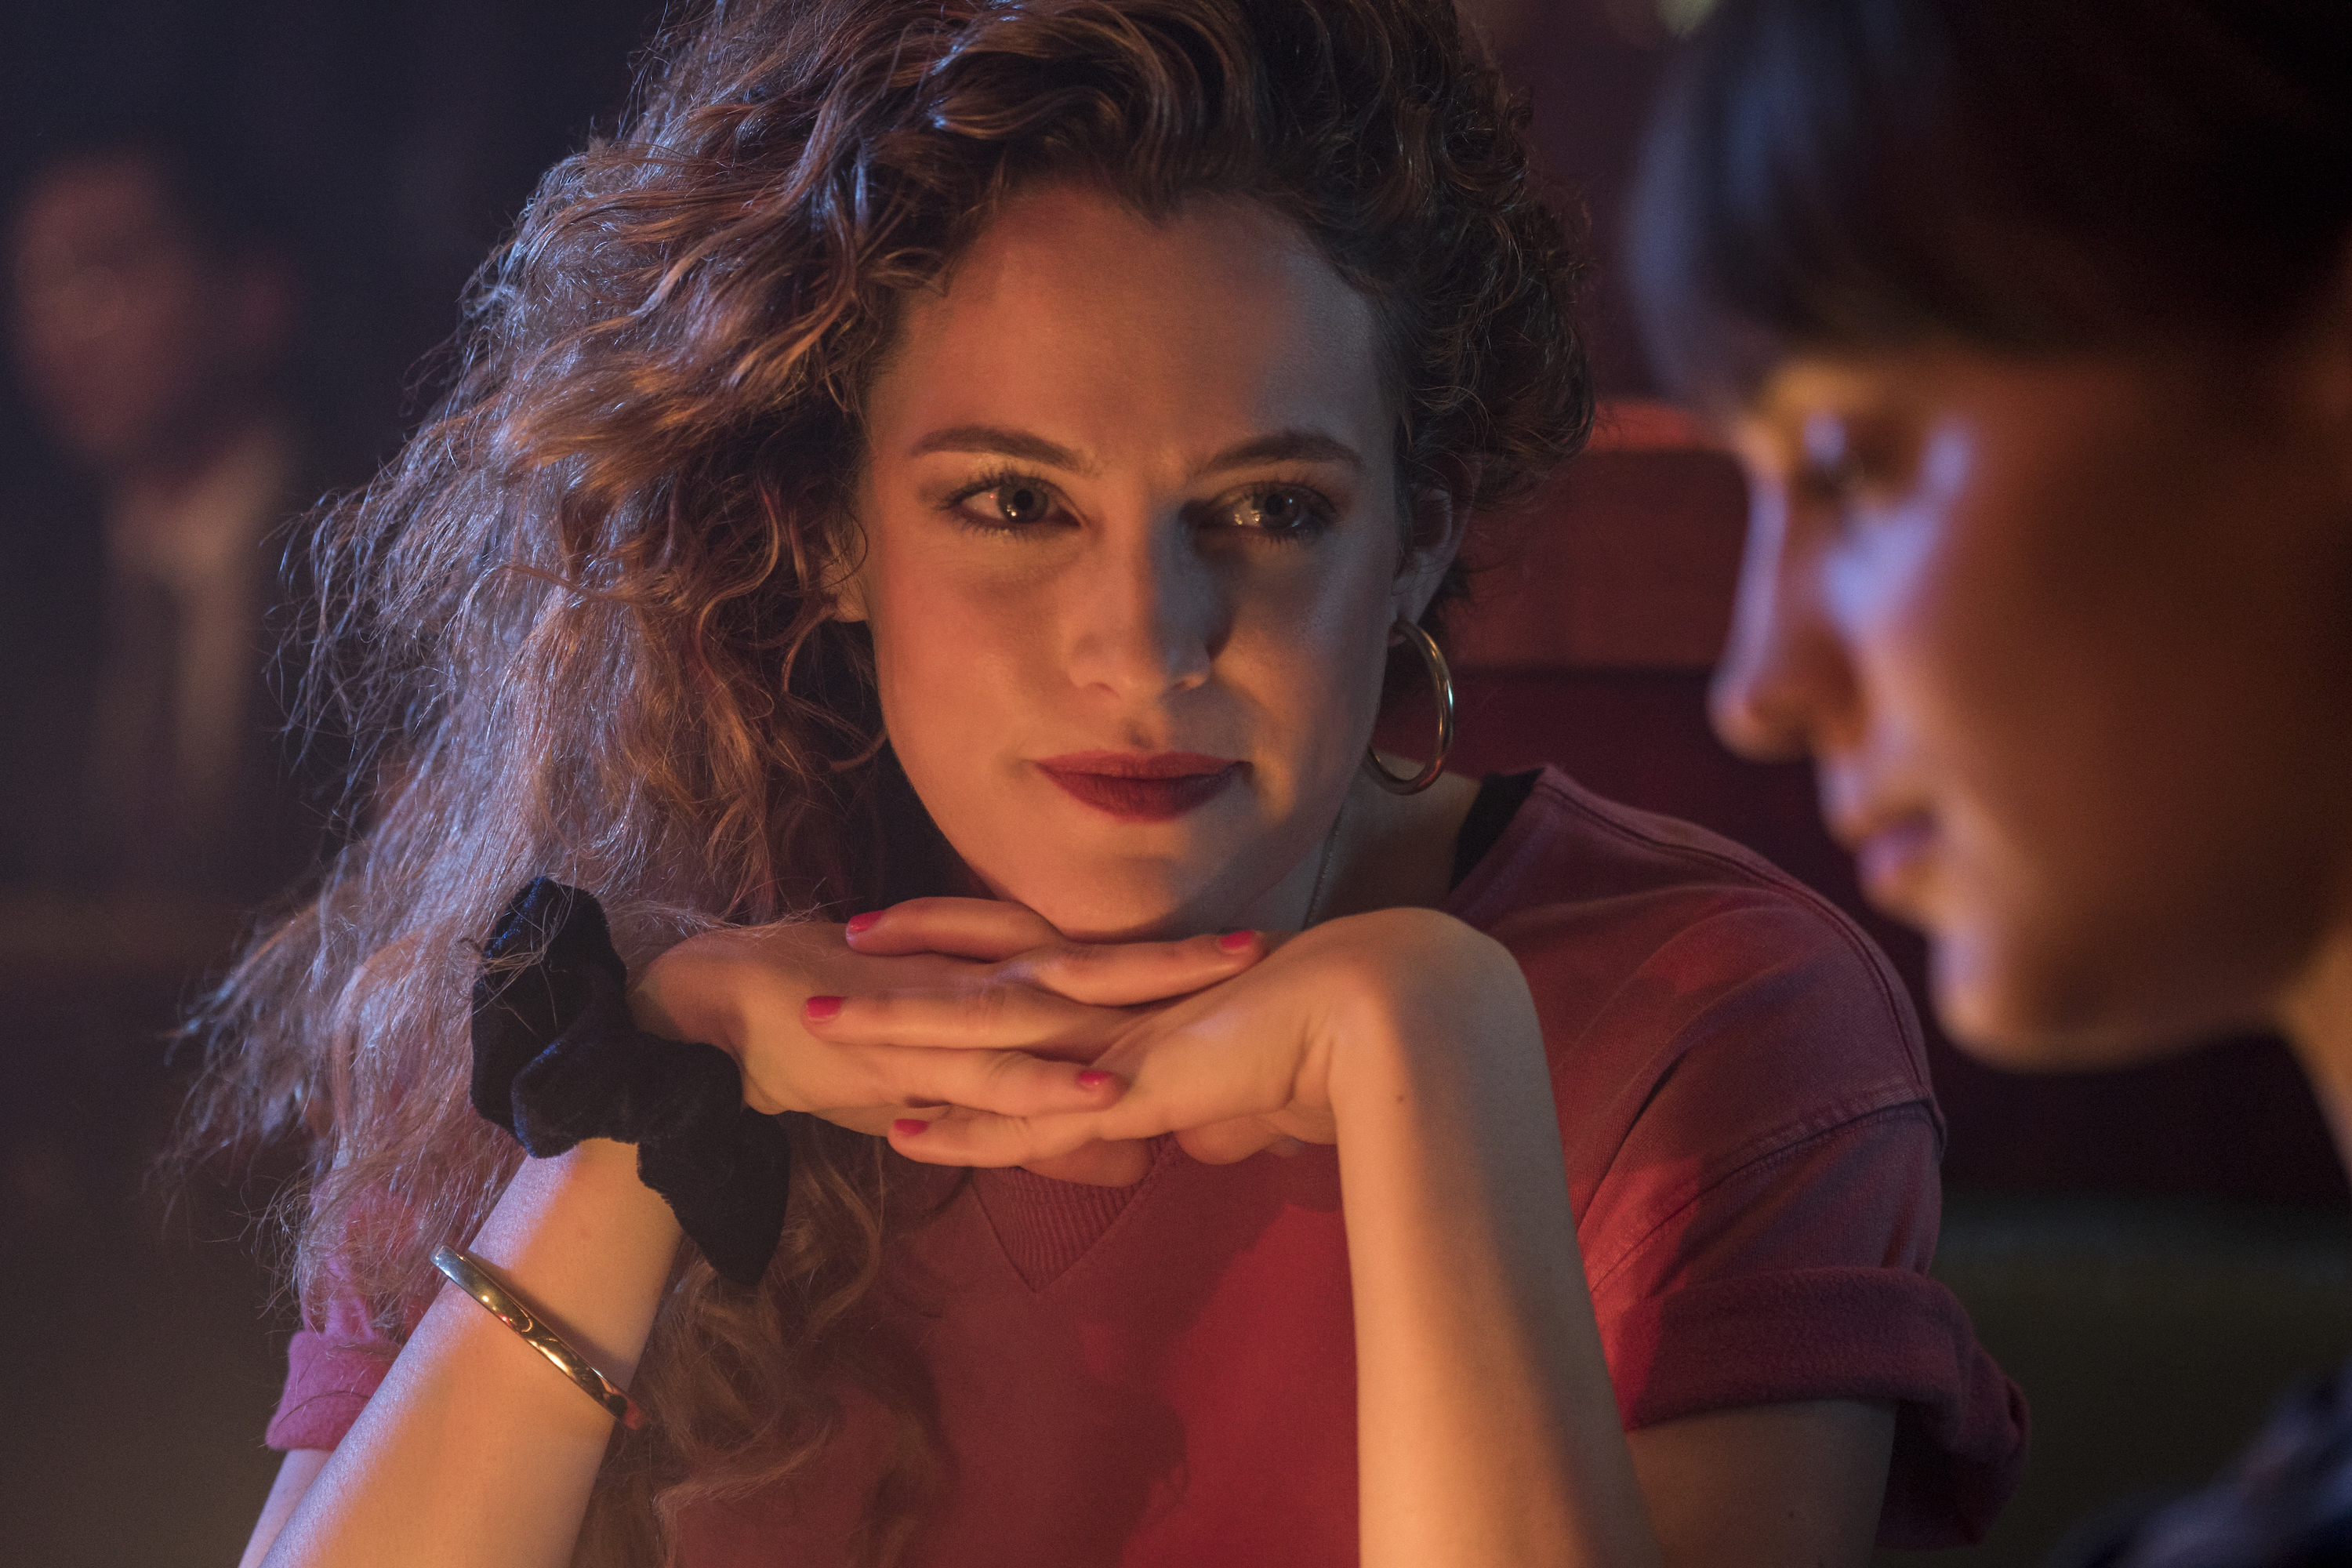 Lily (Keough) looks fondly at Lucy (Vikander).